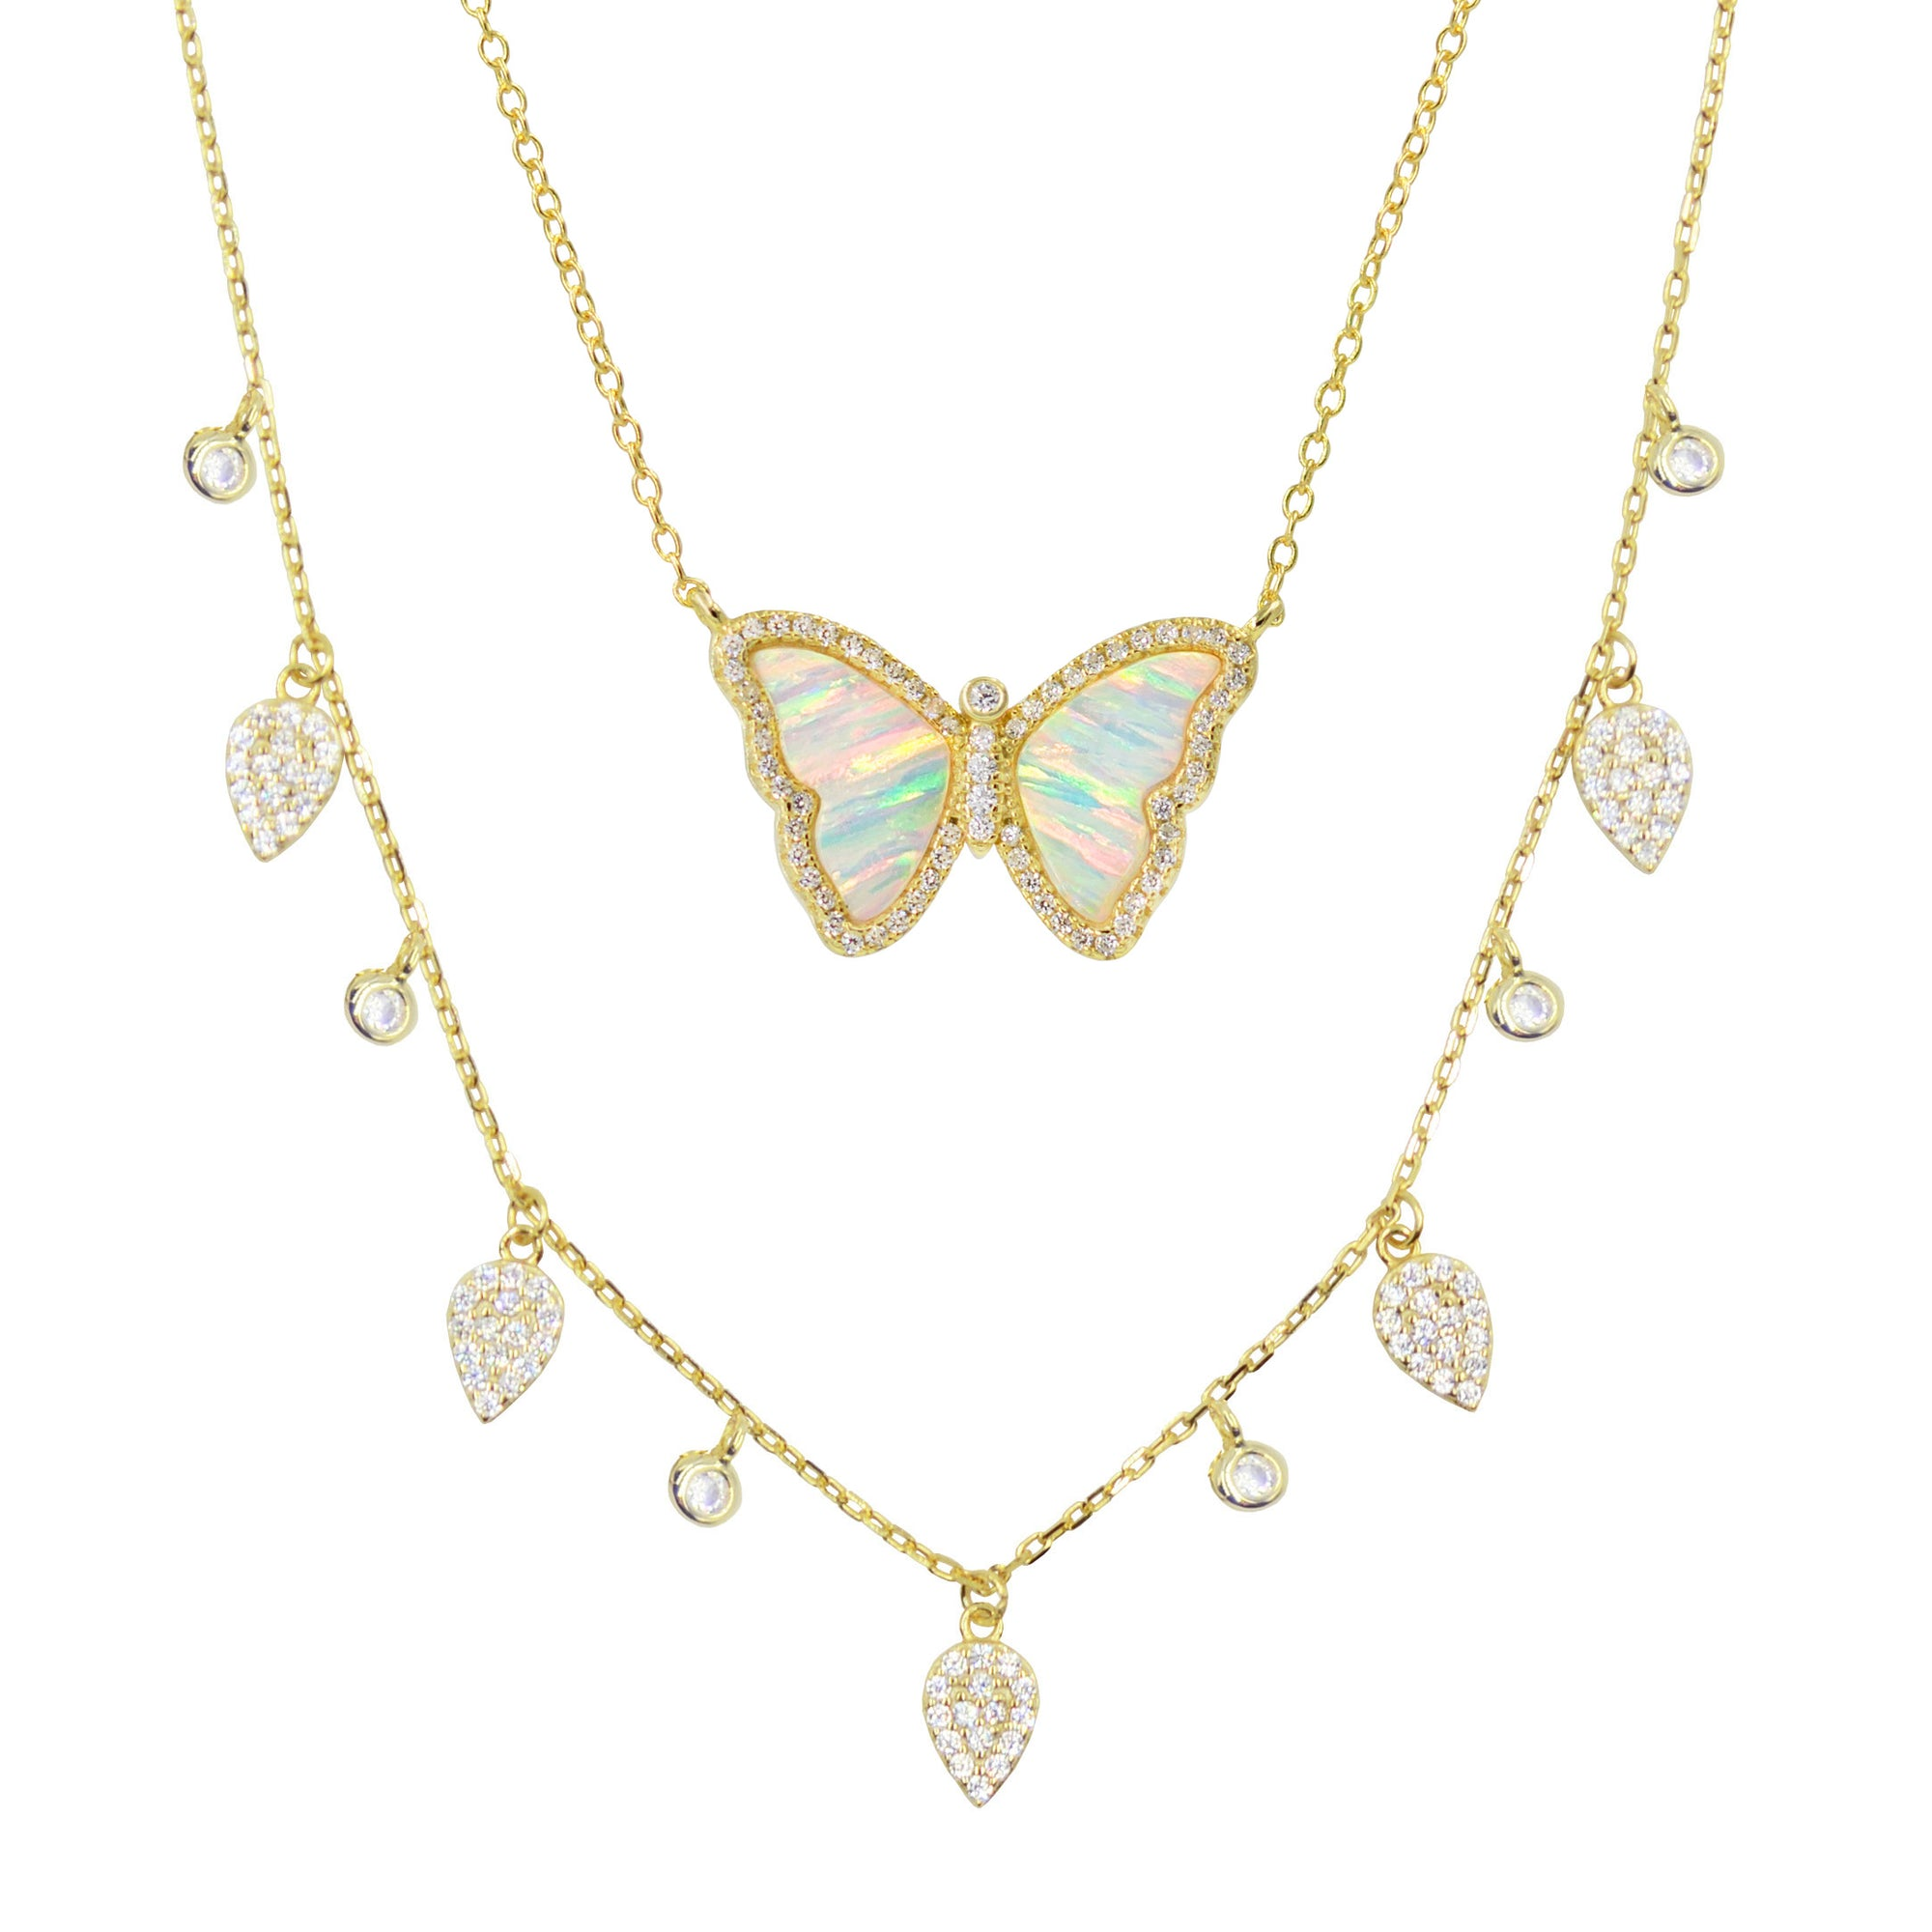 Gift Set | Opal Butterfly Necklace + Gold Choker